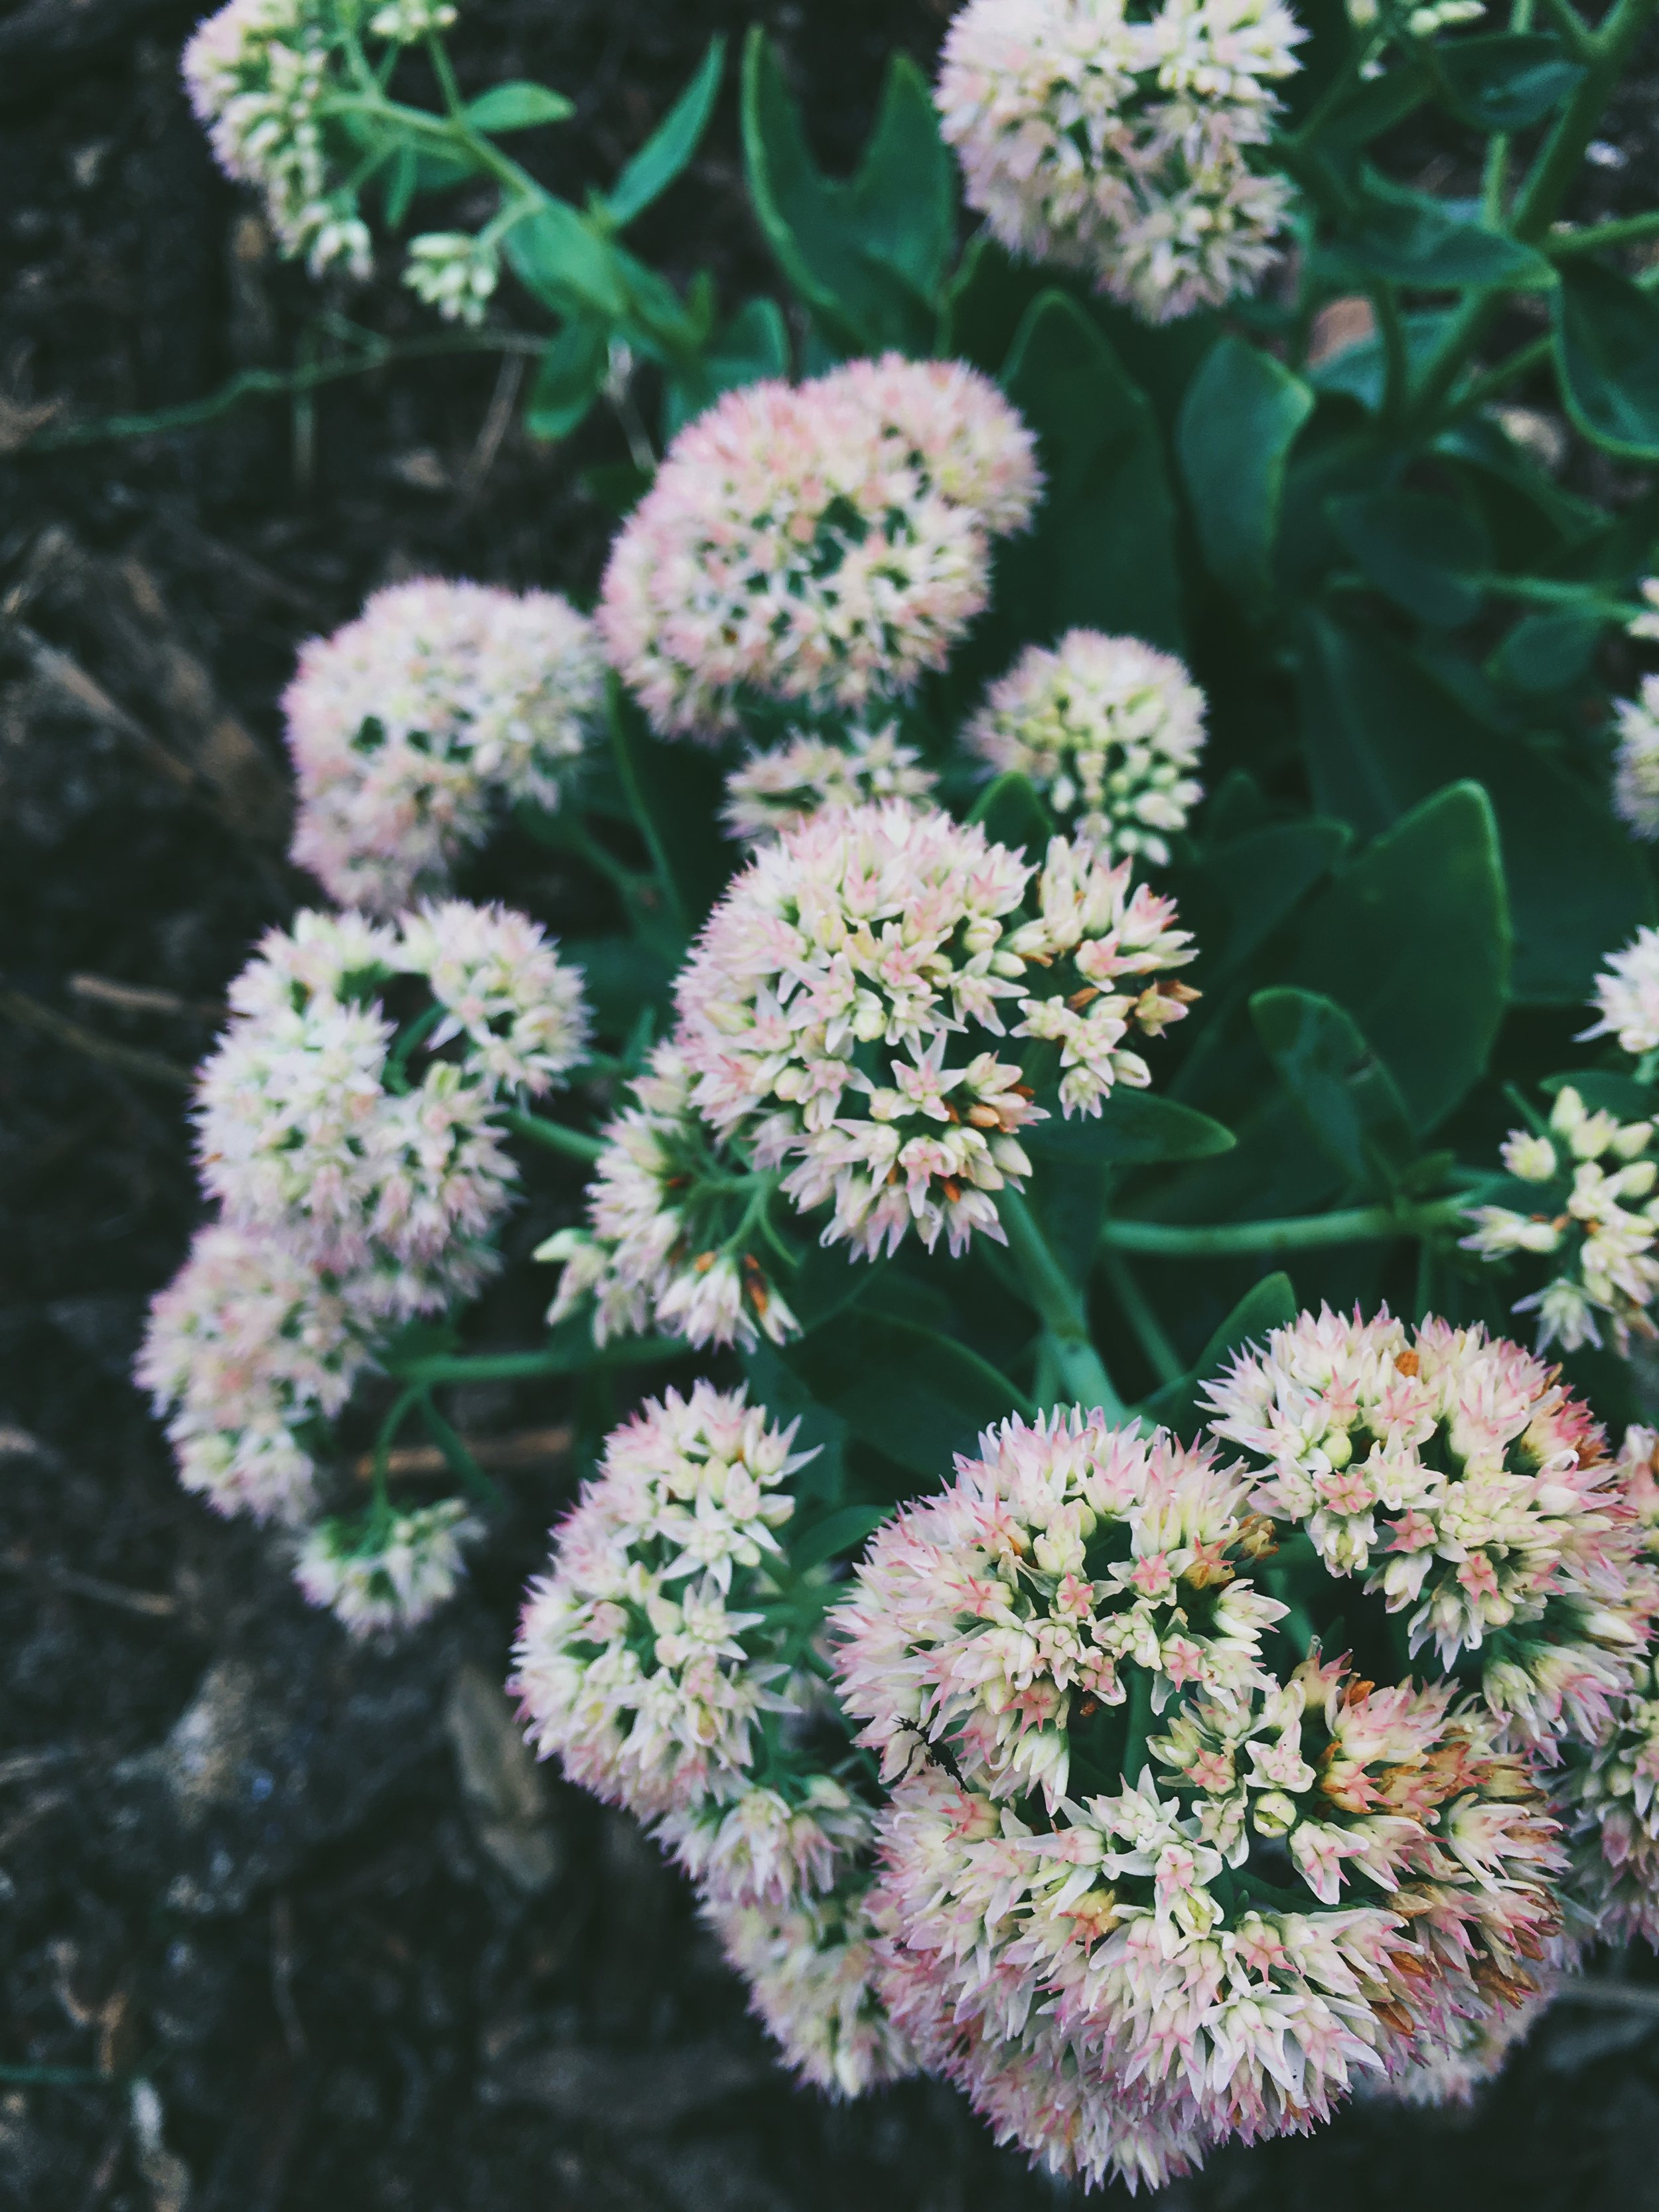 Our sedum before they froze...can't wait for them to bloom again!